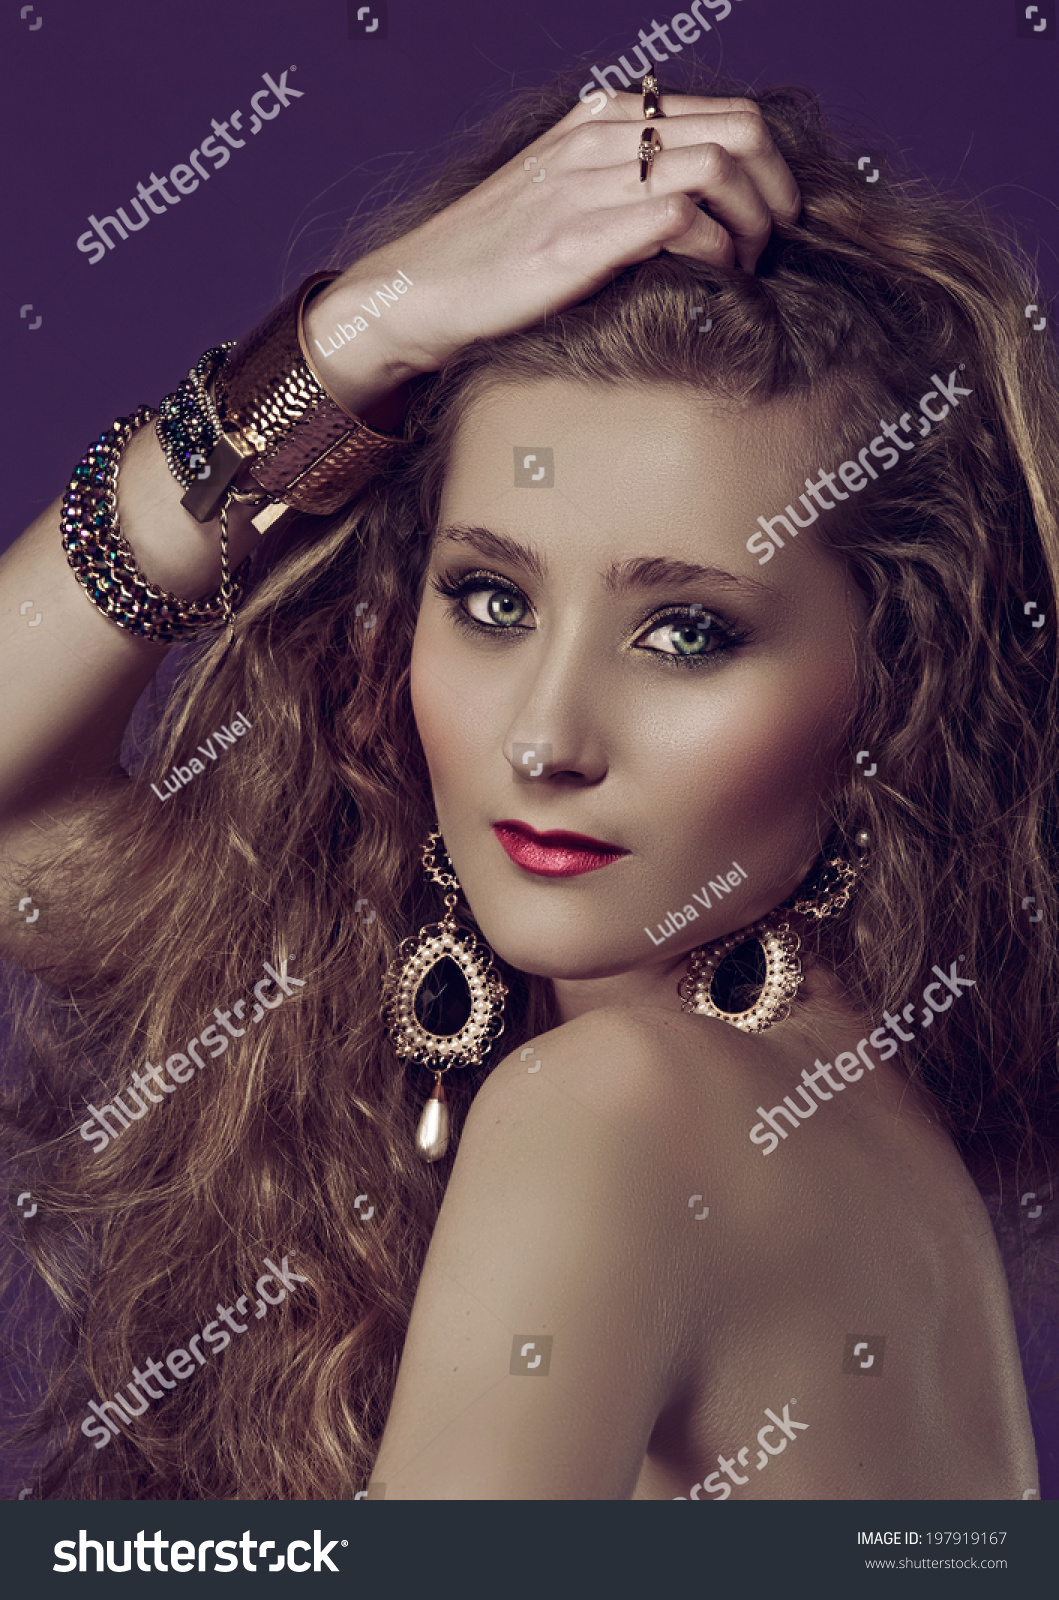 Portrait Of A Young Beautiful Woman With Long Blond Curly Hair Wearing Pearl  Earrings And Gold